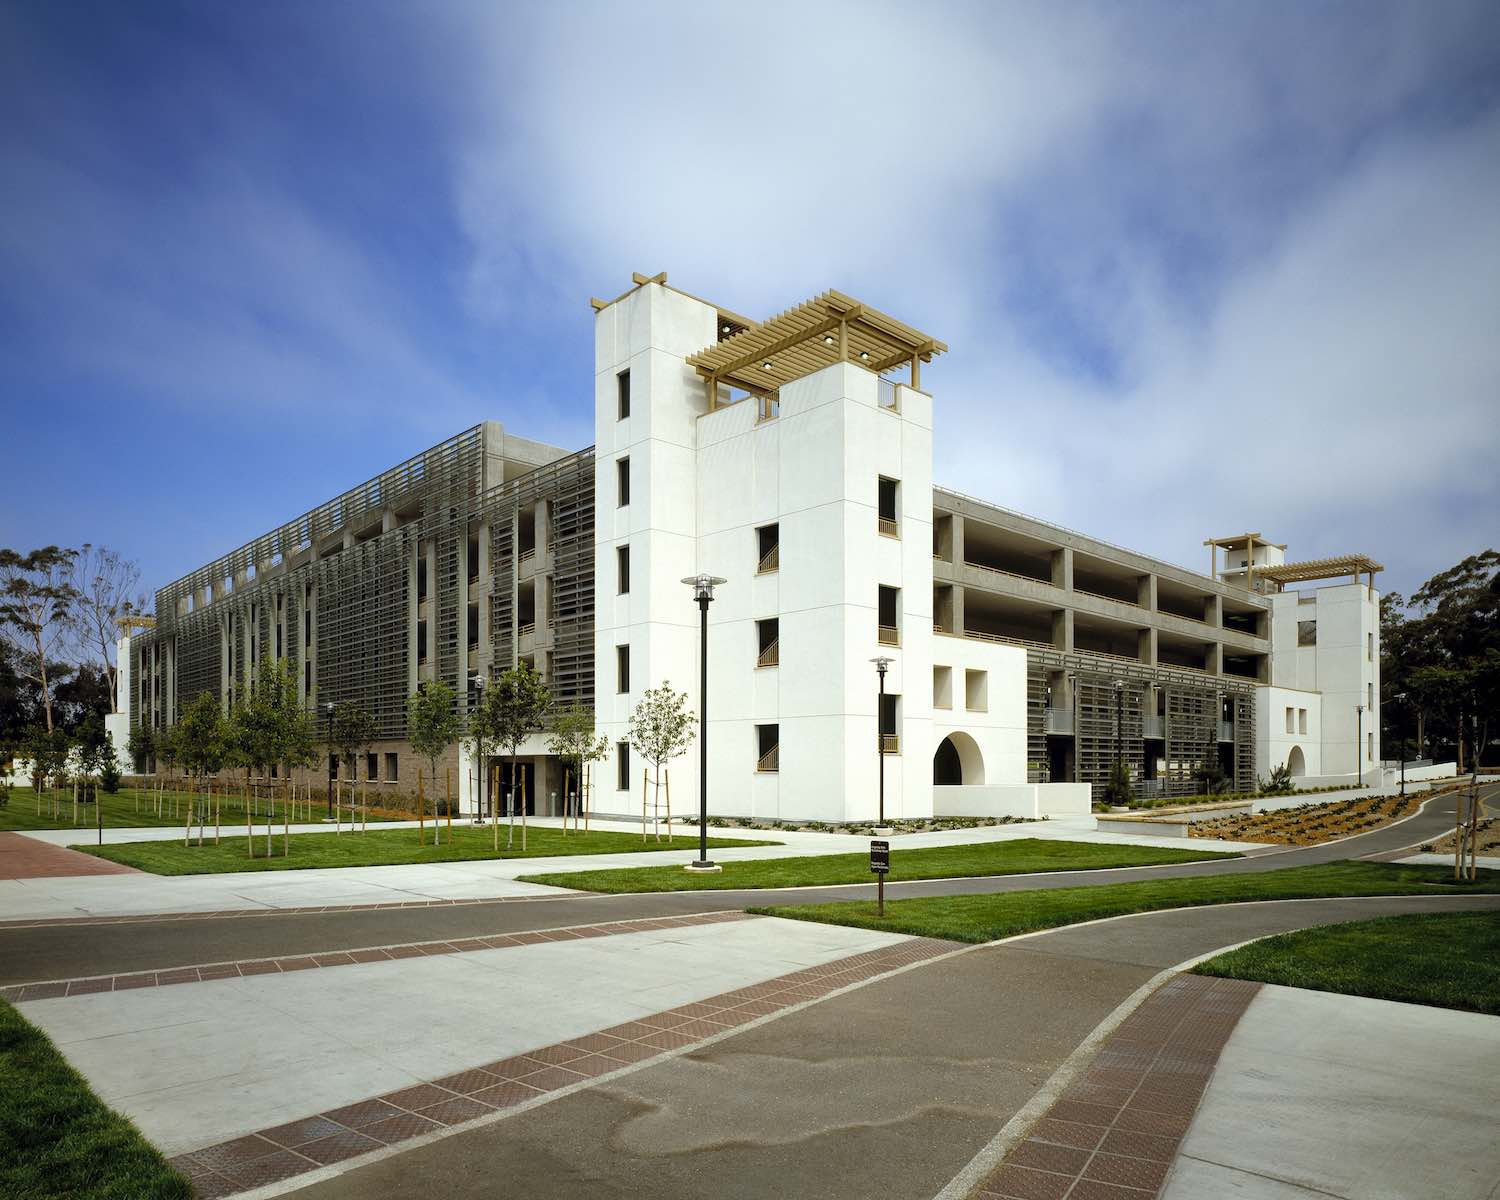 UCSB Parking Structure